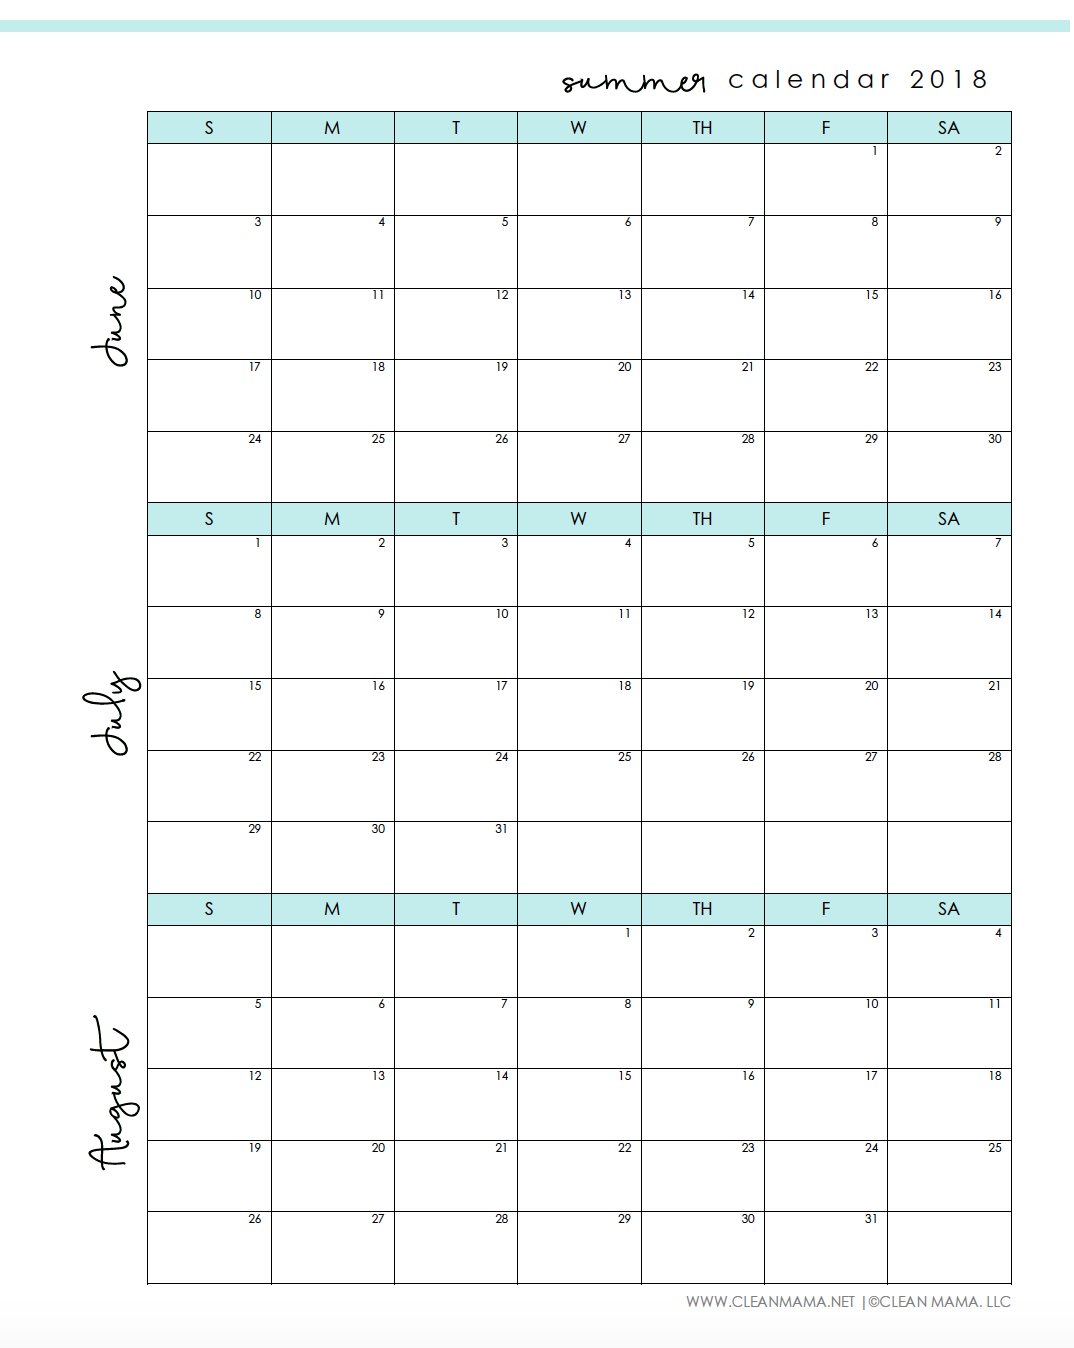 Free Printable : Summer 2018 Calendar - Clean Mama - Free Printable Schedule